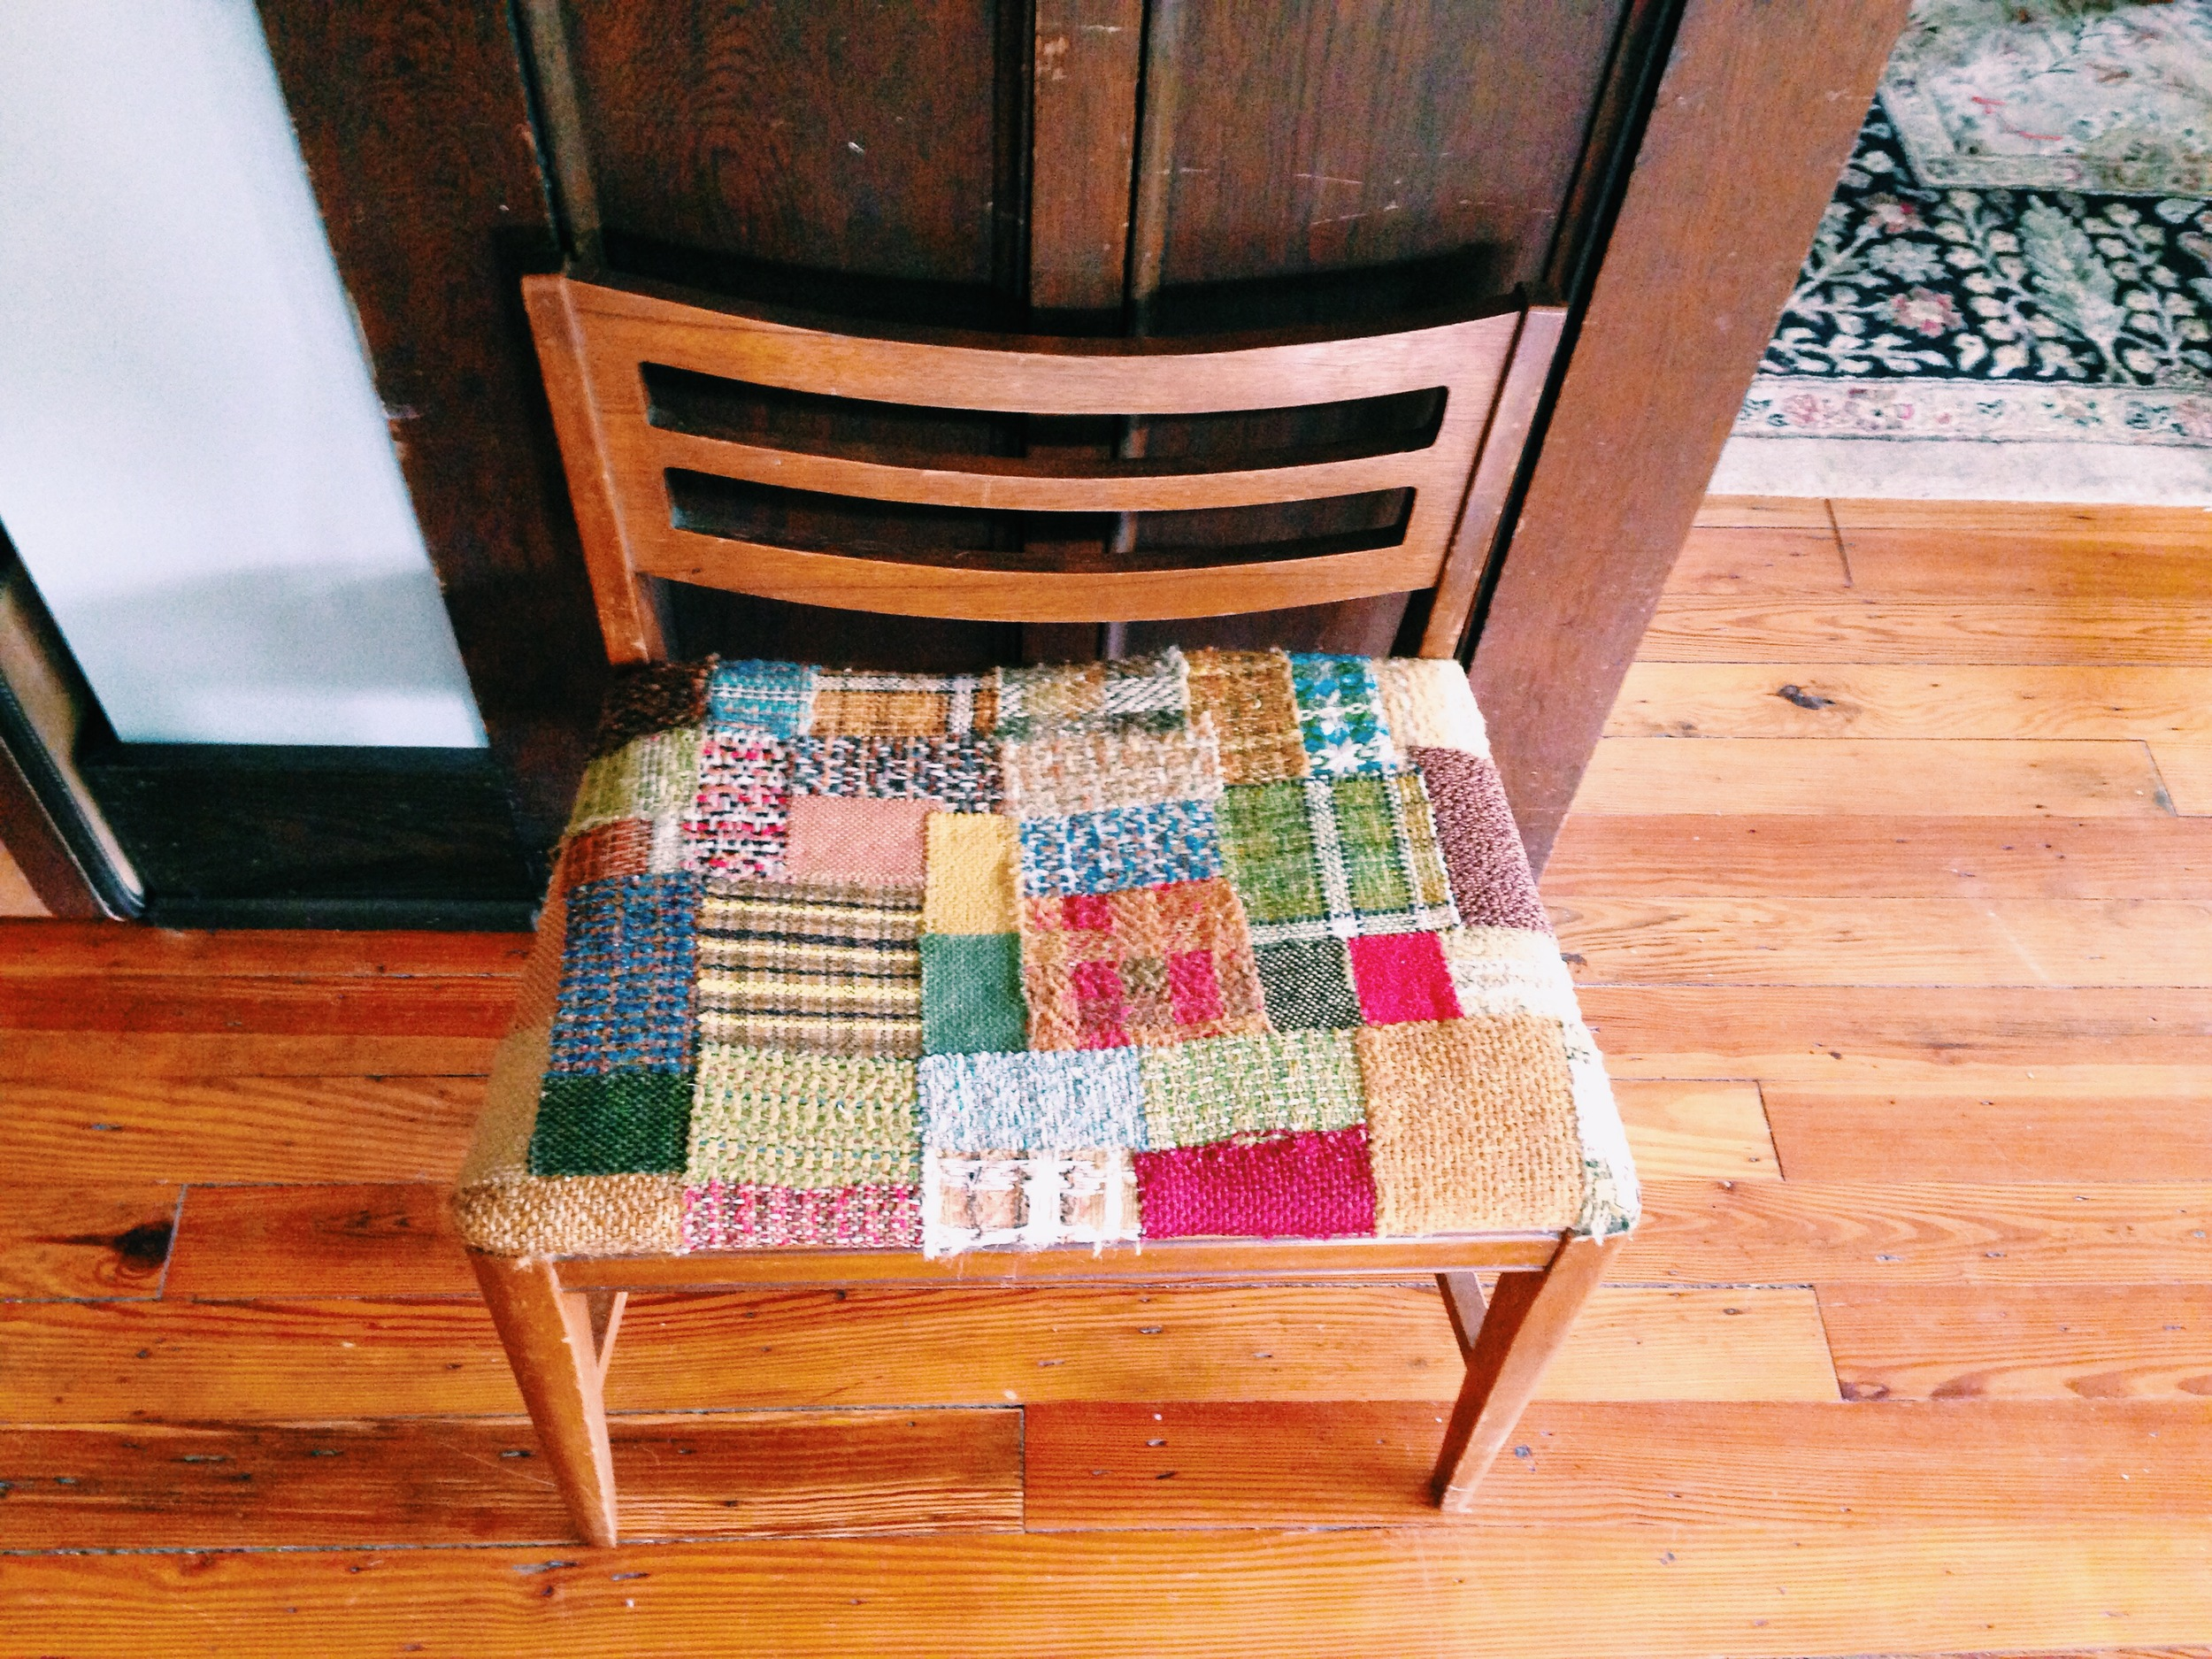 quiltedbench